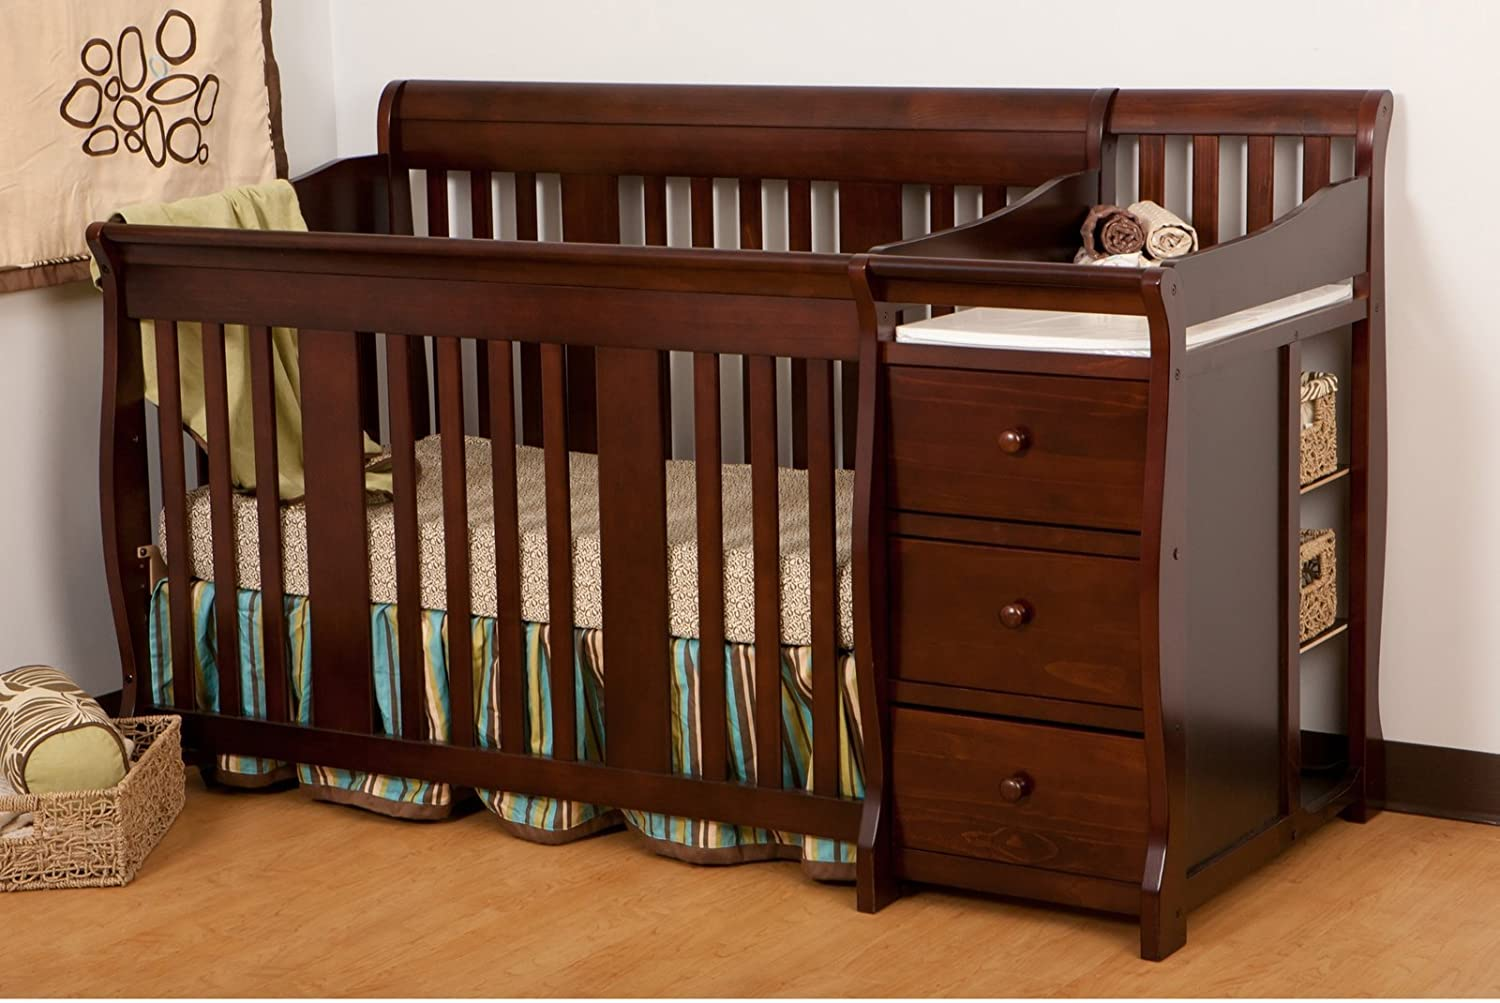 Top 7 Convertible Baby Crib with Transforming Table Attached To Acquire In 2020